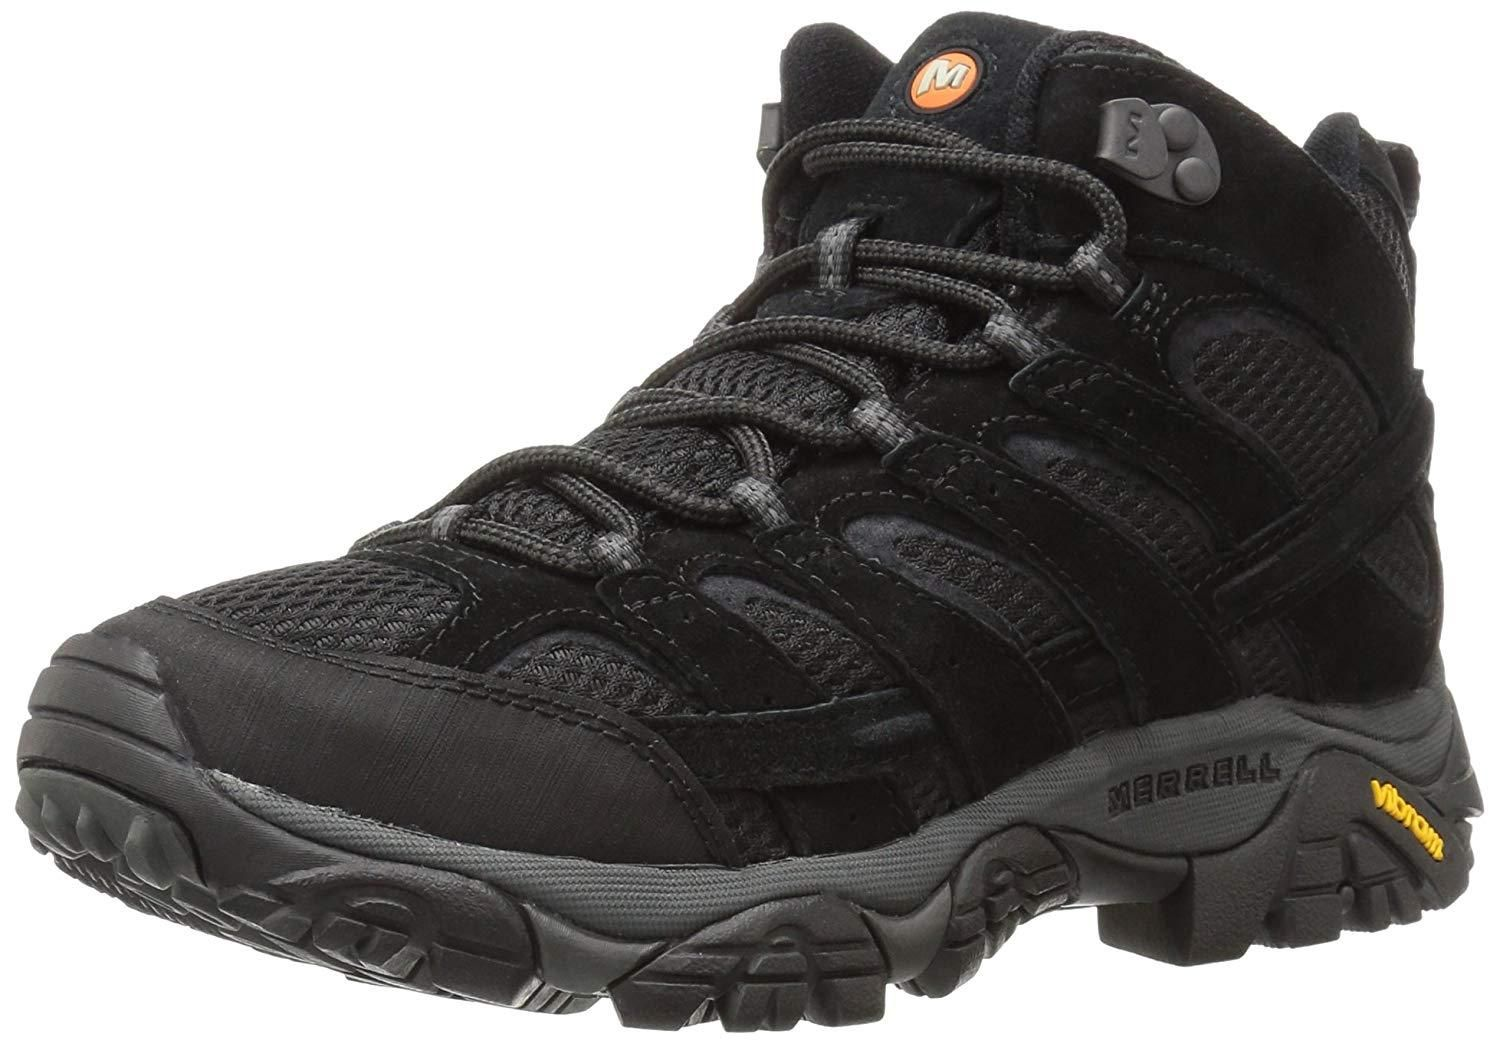 adaf22e7784 Merrell Men's Moab 2 Vent Mid Hiking Boot in 2019 | Products ...